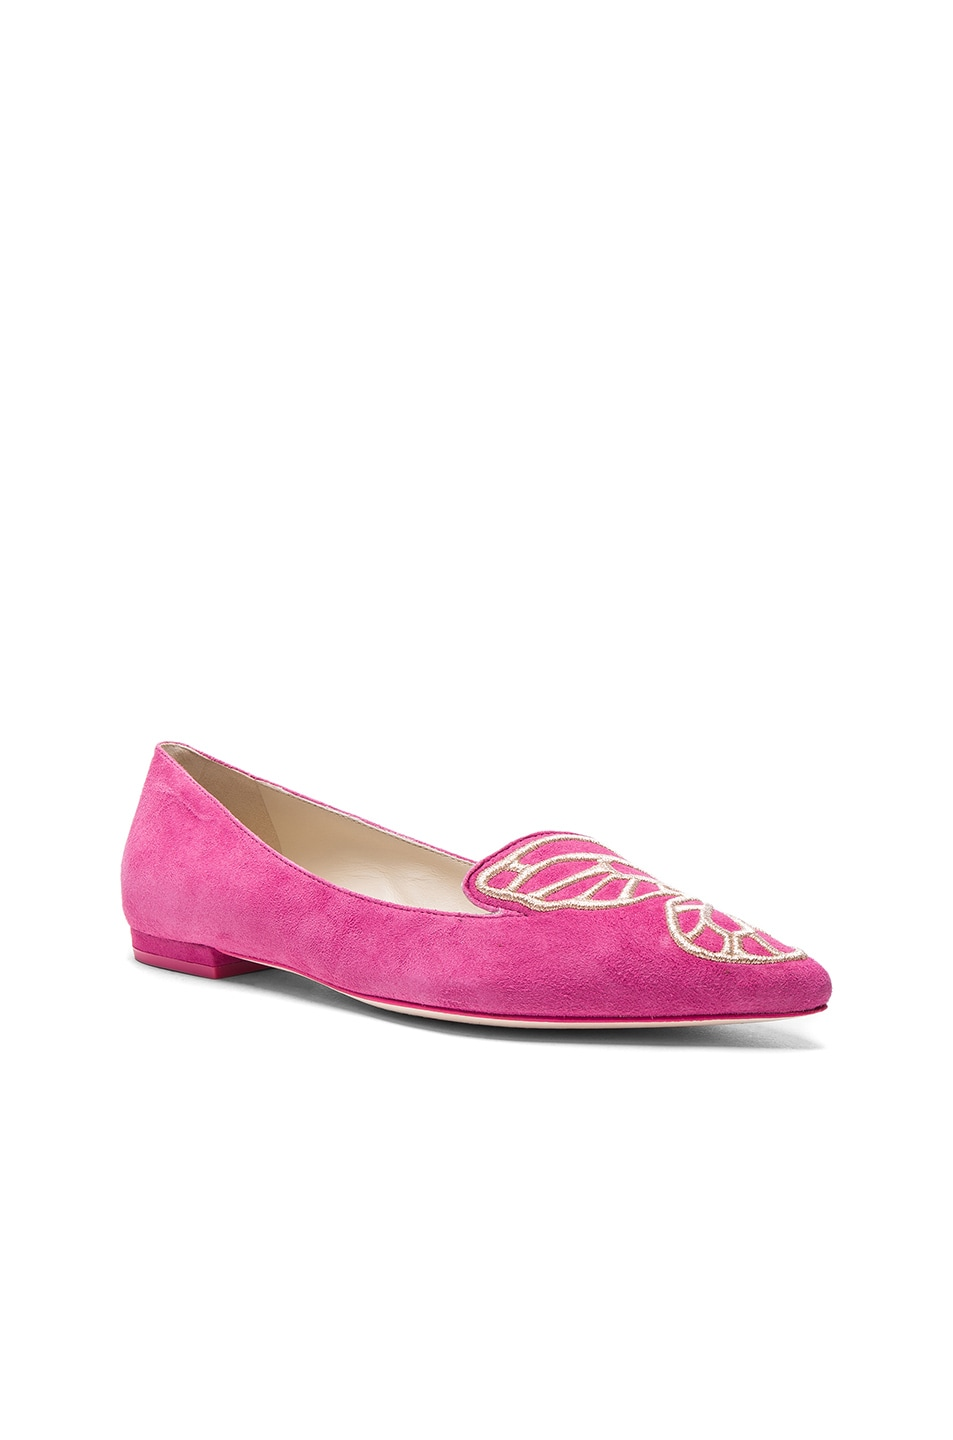 Image 3 of Sophia Webster Suede Bibi Butterfly Flats in Magenta & Rose Gold